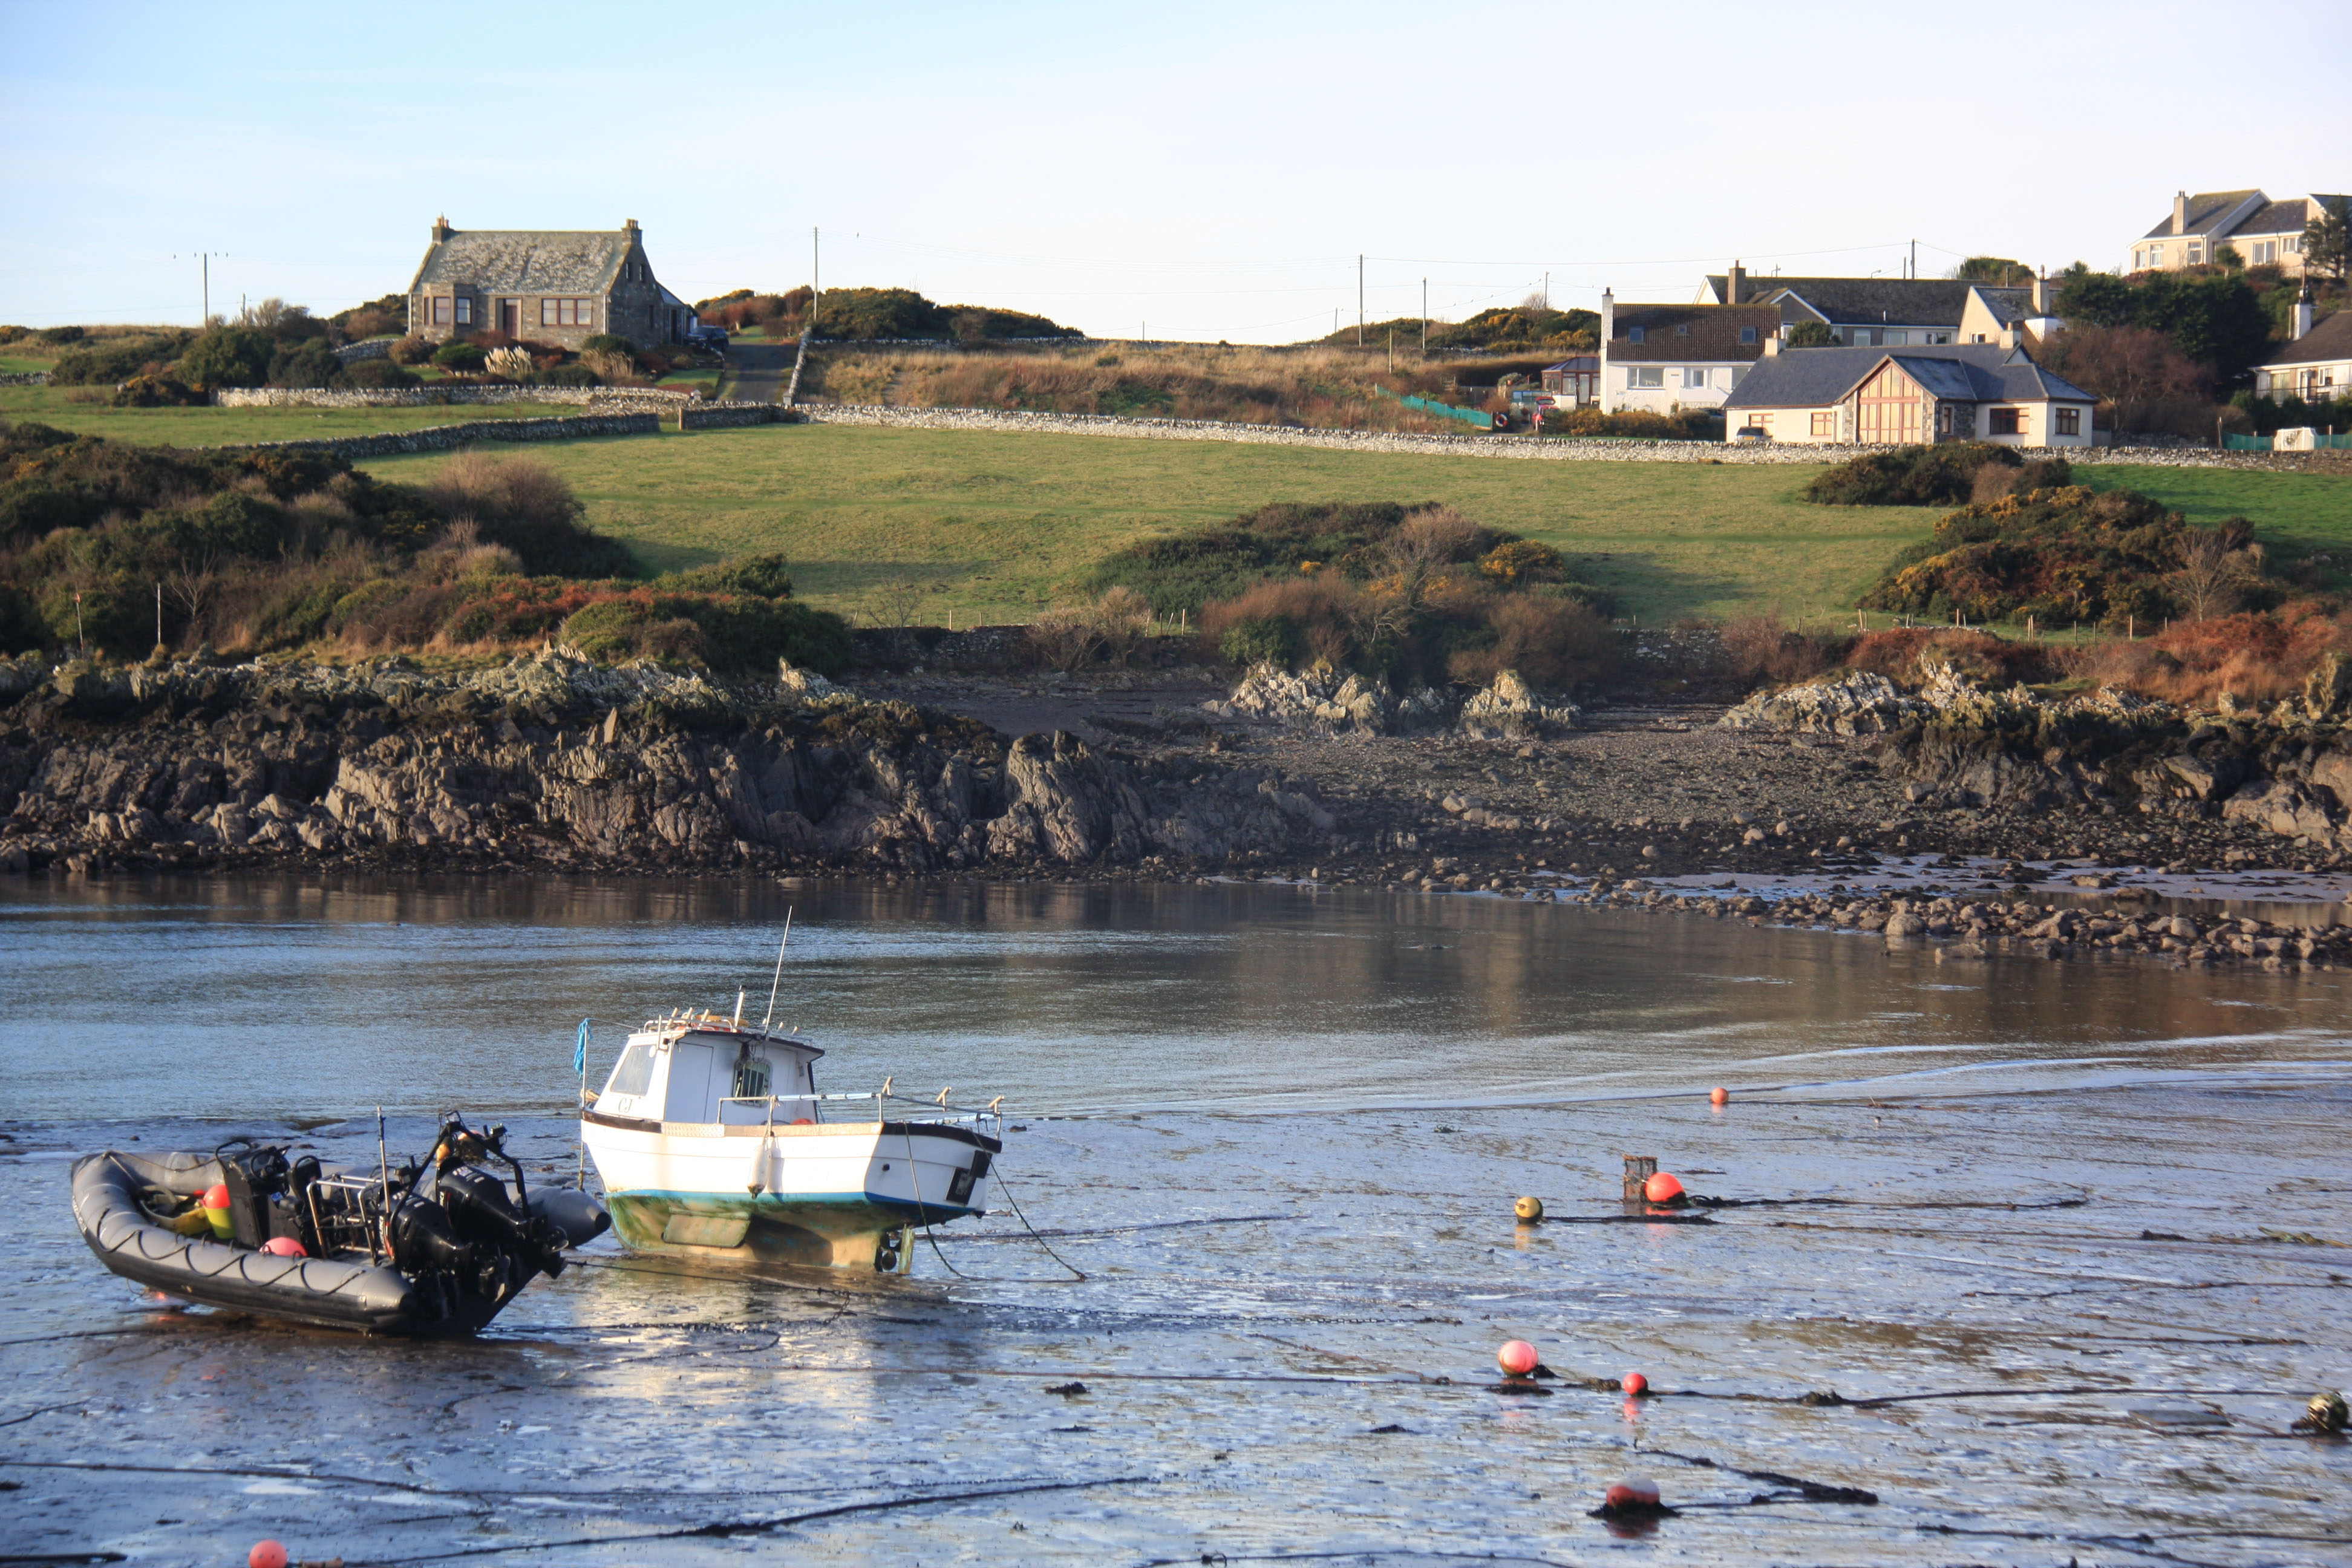 Island or mainland? Isle of Whithorn, Scotland